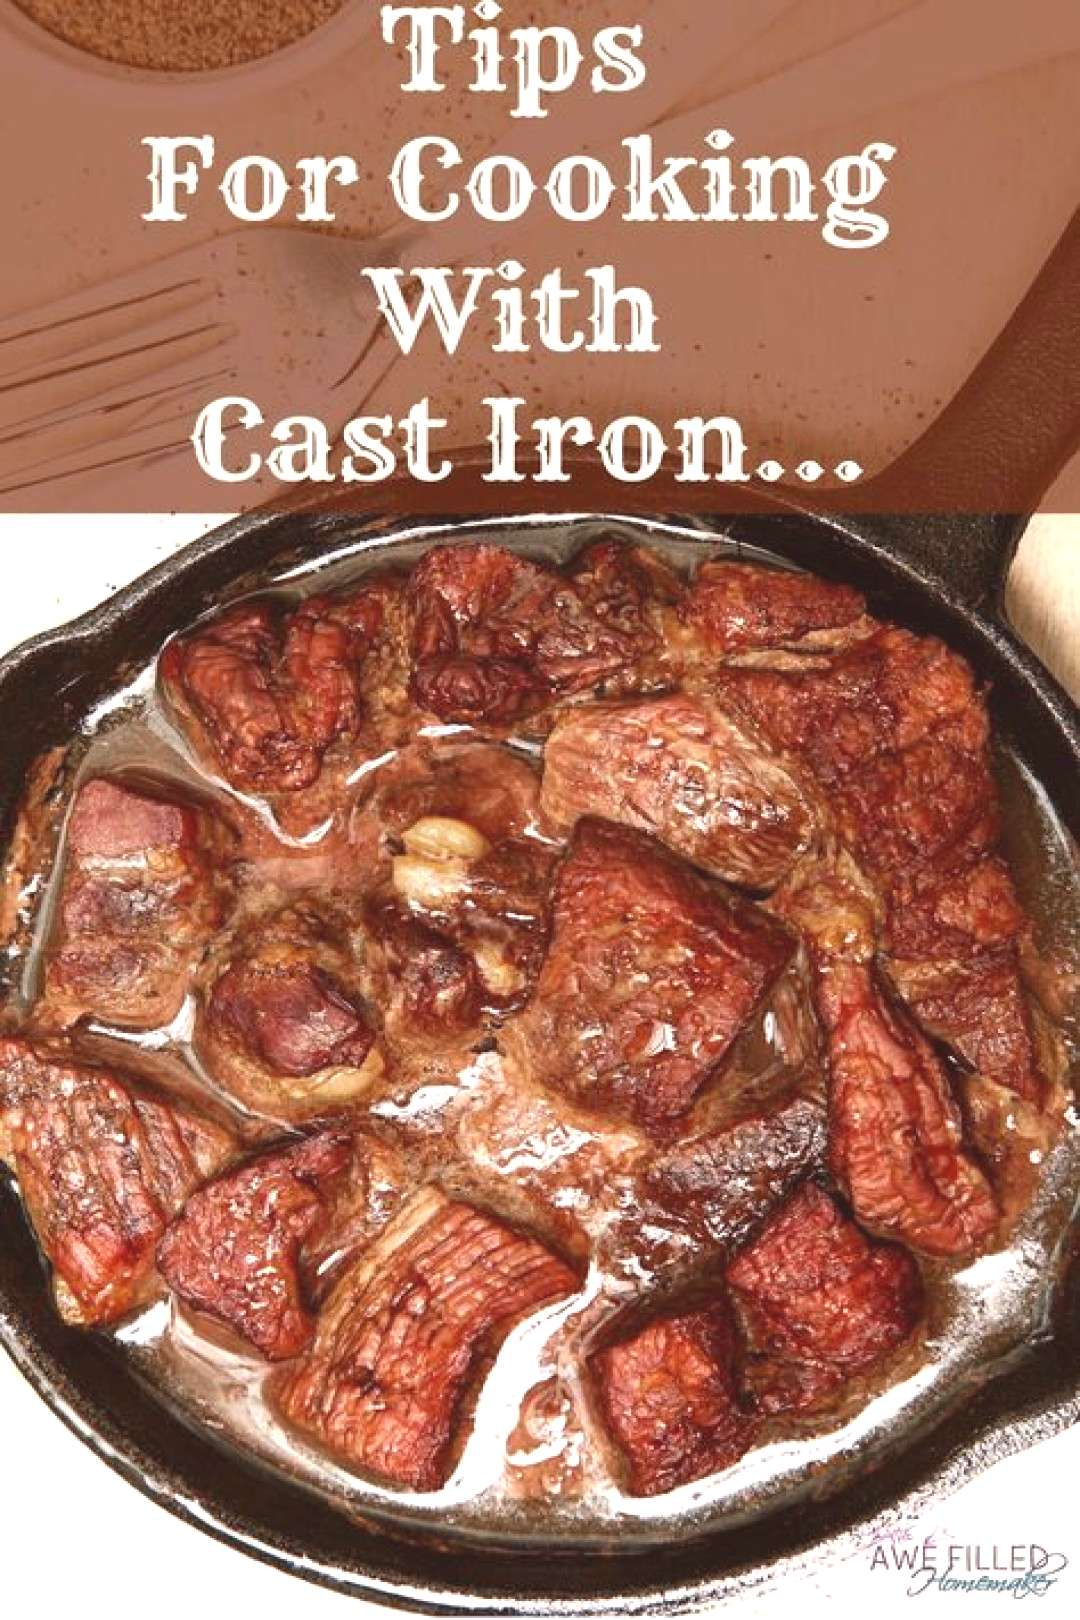 Even if you have cast iron cookware you might want to read these tips for cooking with cast iron. v